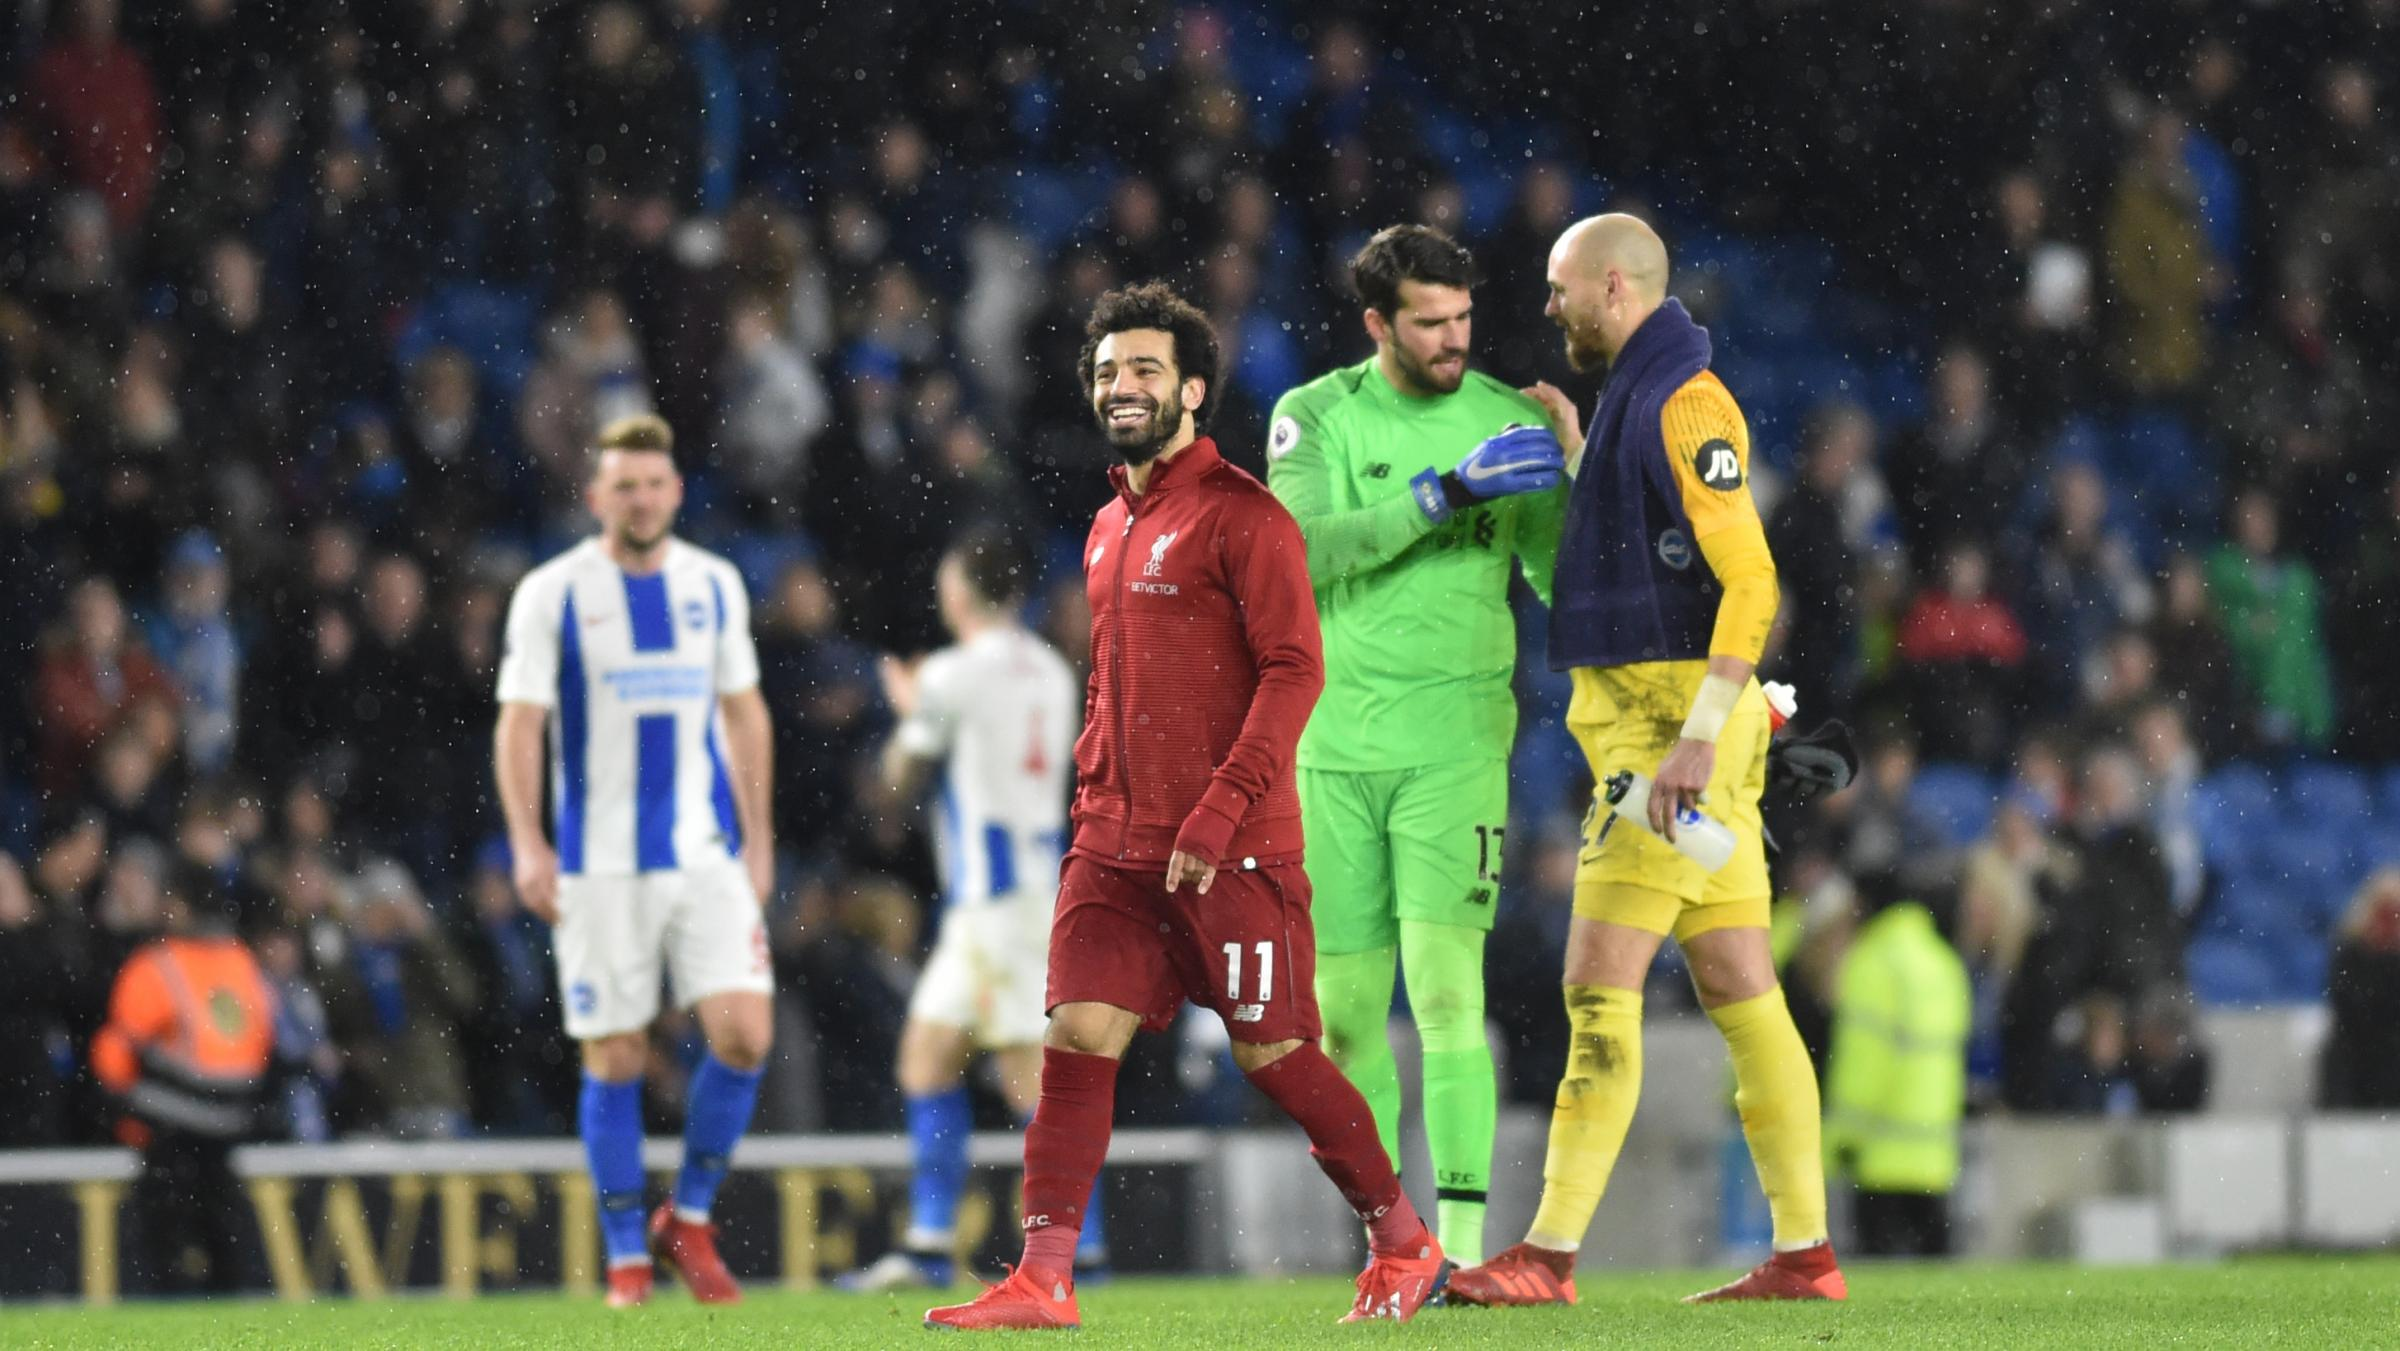 Albion Analysis: Liverpool results emphasise progress